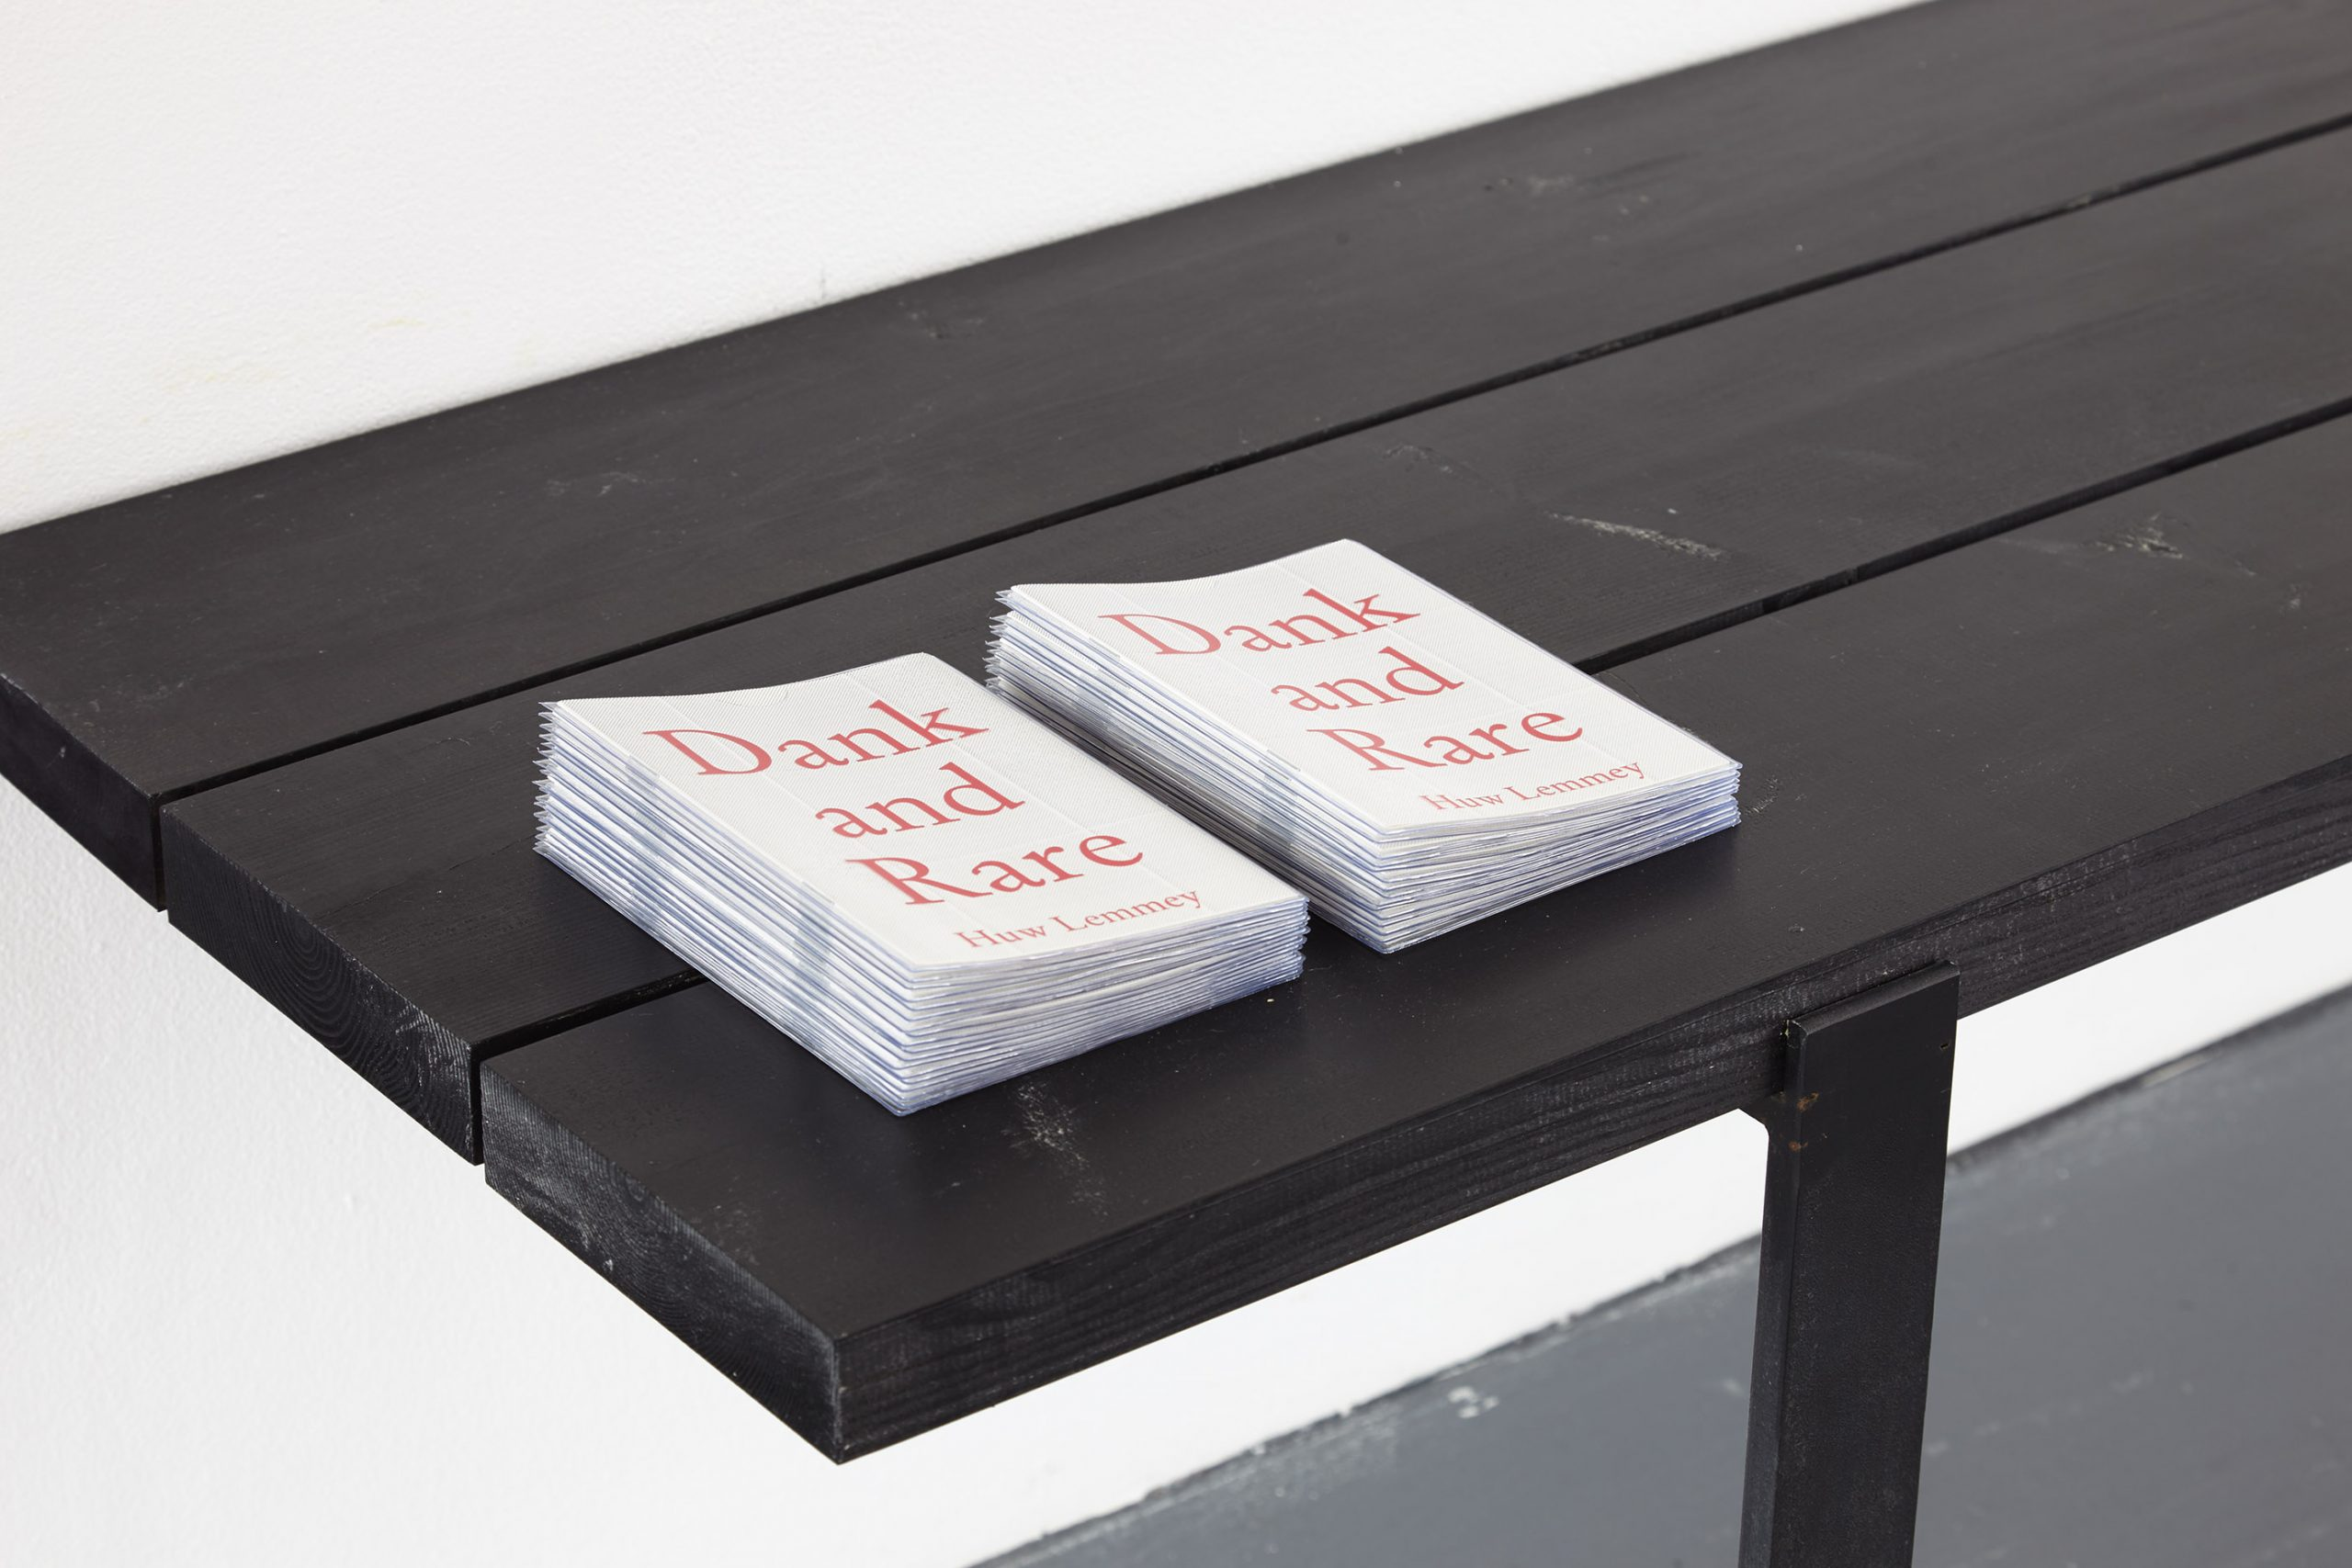 Two stacks of publications on a wooden bench.